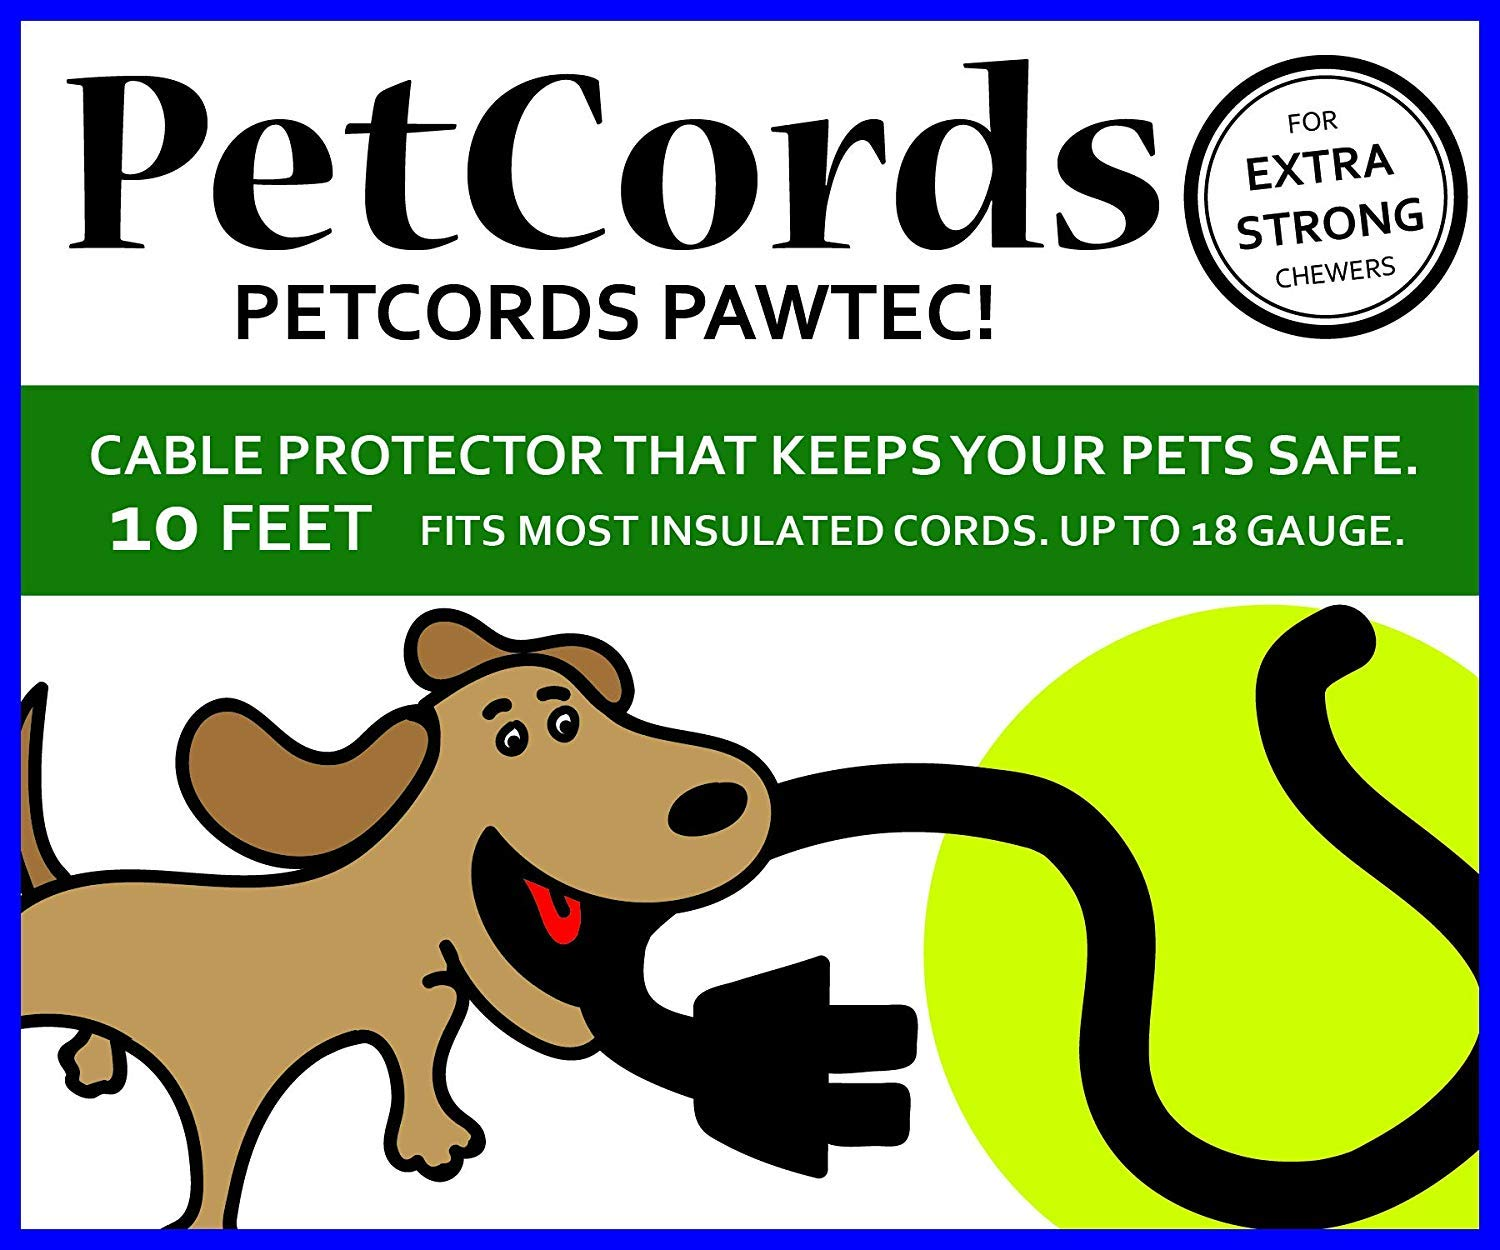 PetCords Dog And Cat Cord Protector- Protects Your Pets From Chewing Through Insulated Cables, Unscented, Odorless (HEAVY DUTY-10FT, CLEAR (3 METERS))